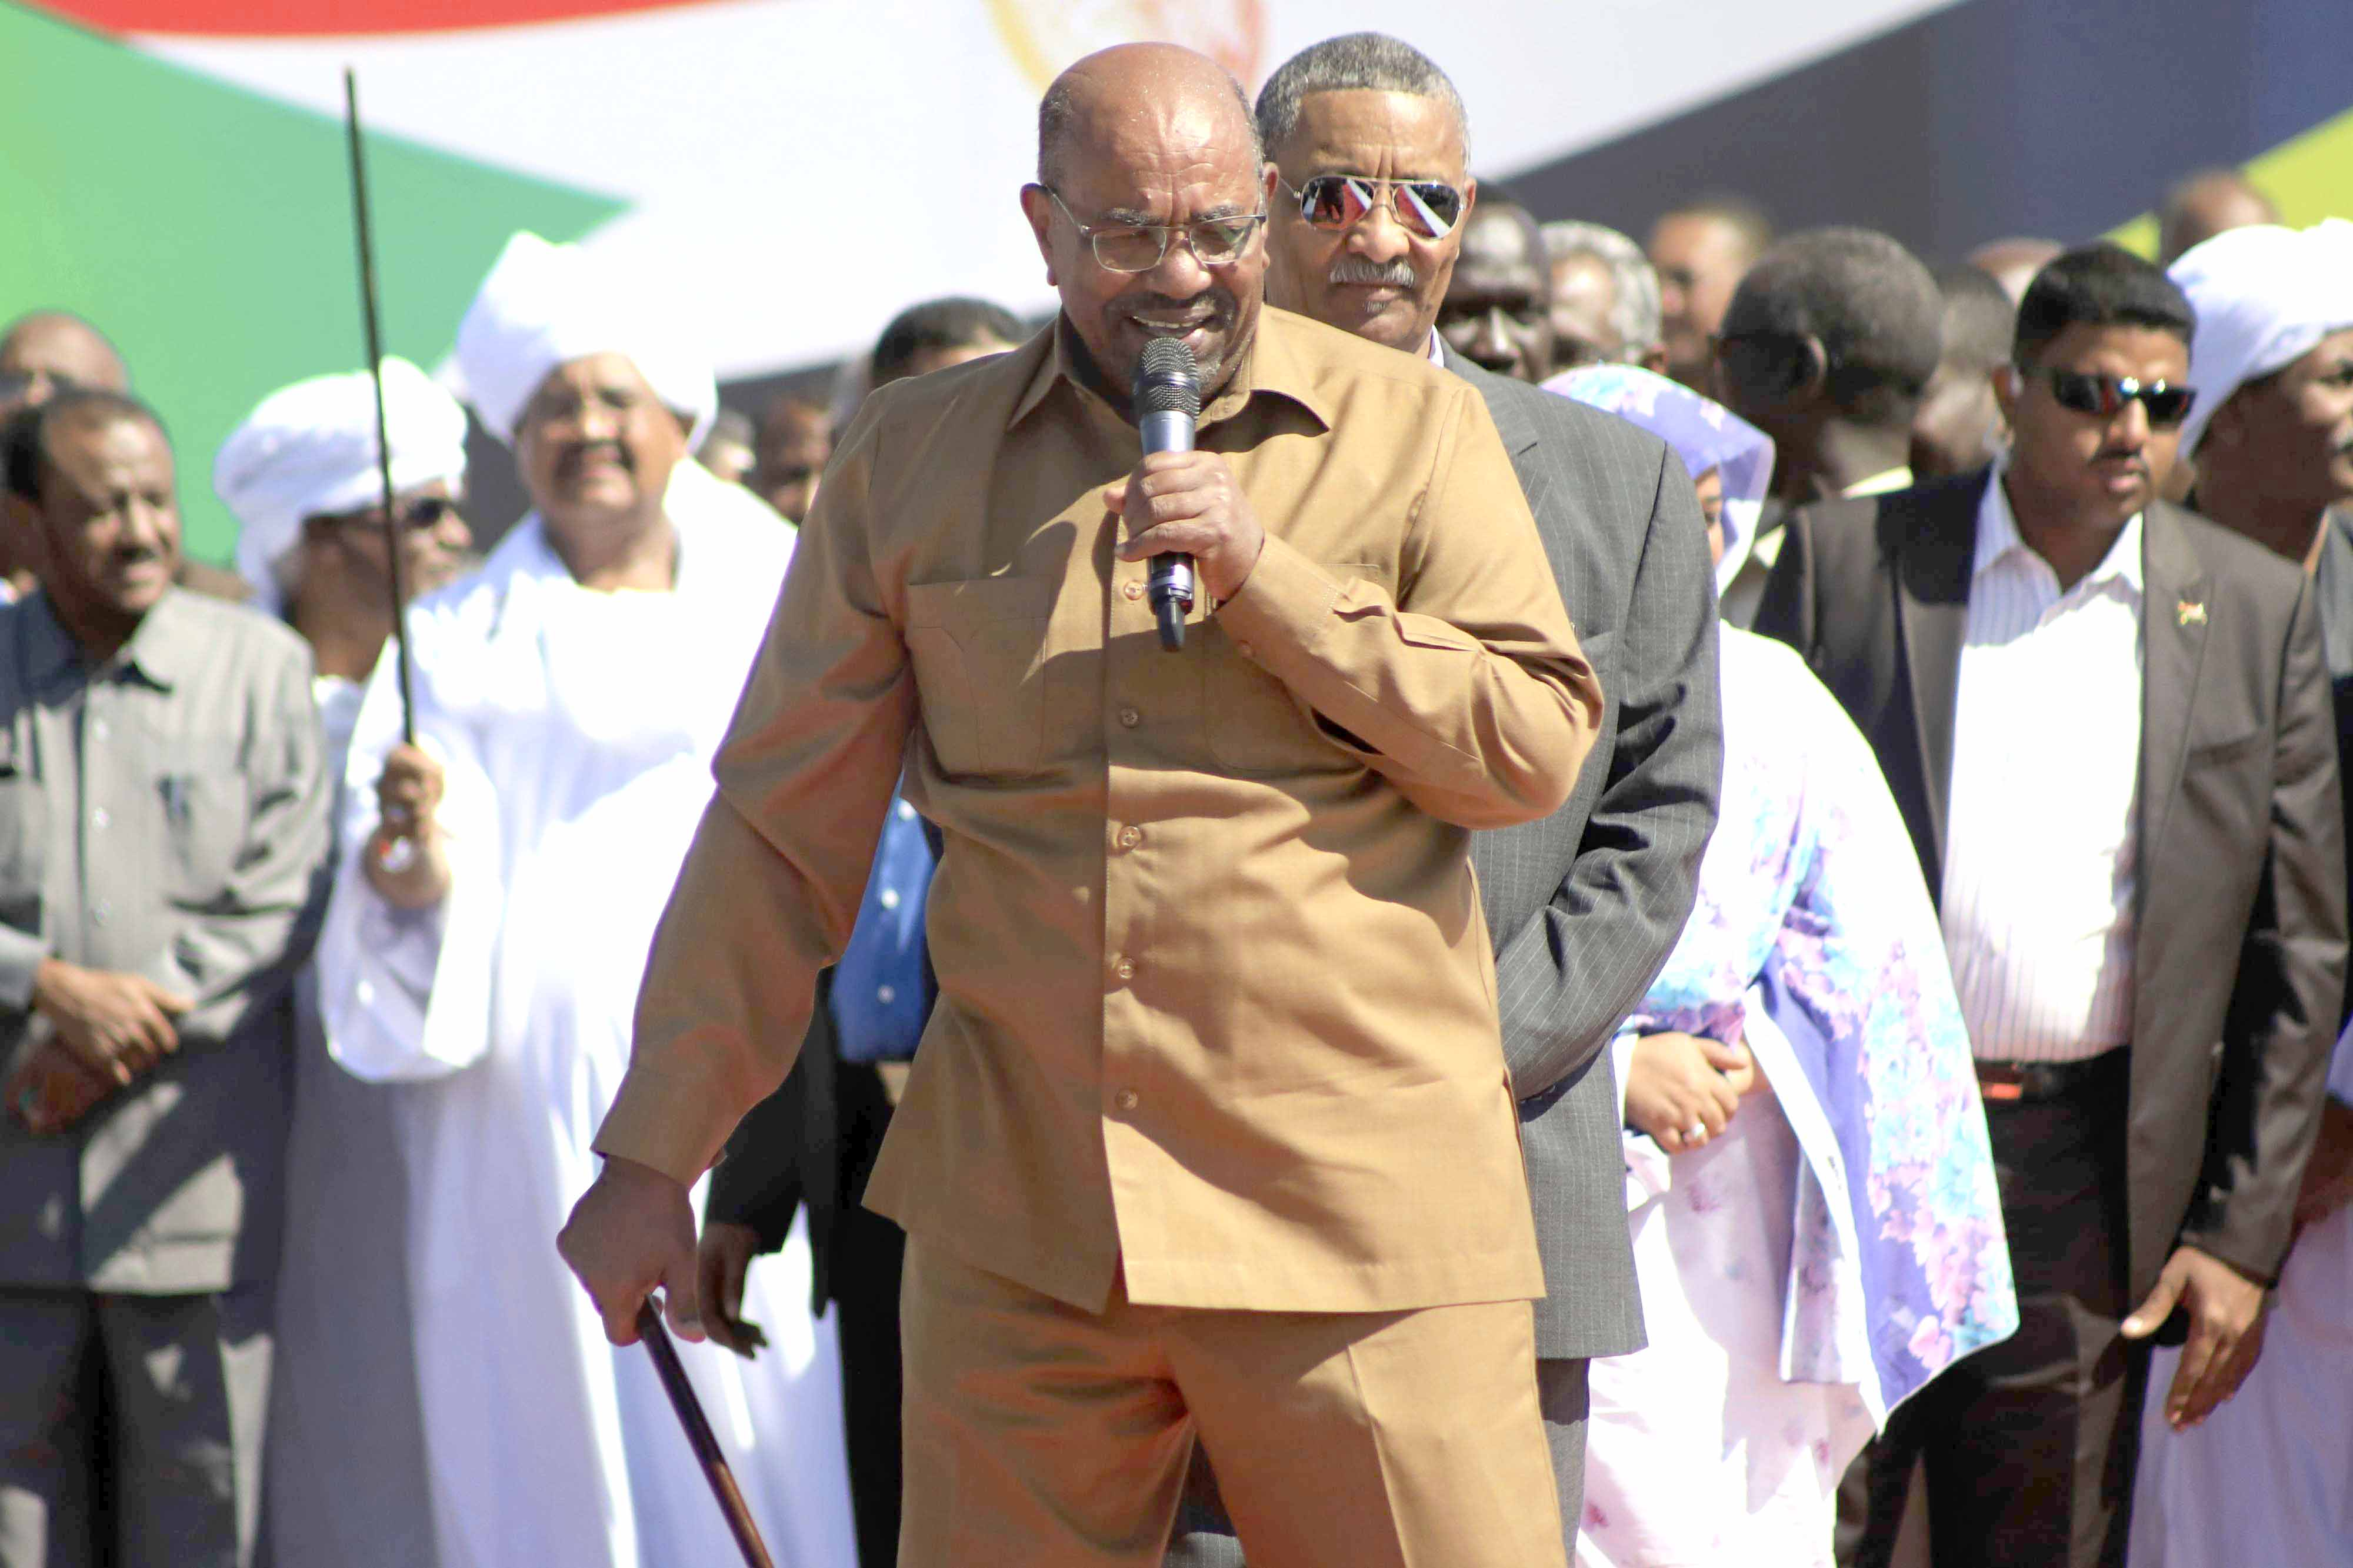 Sudanese President Omar al-Bashir addresses supporters at a rally in Khartoum, January 9. (AP)